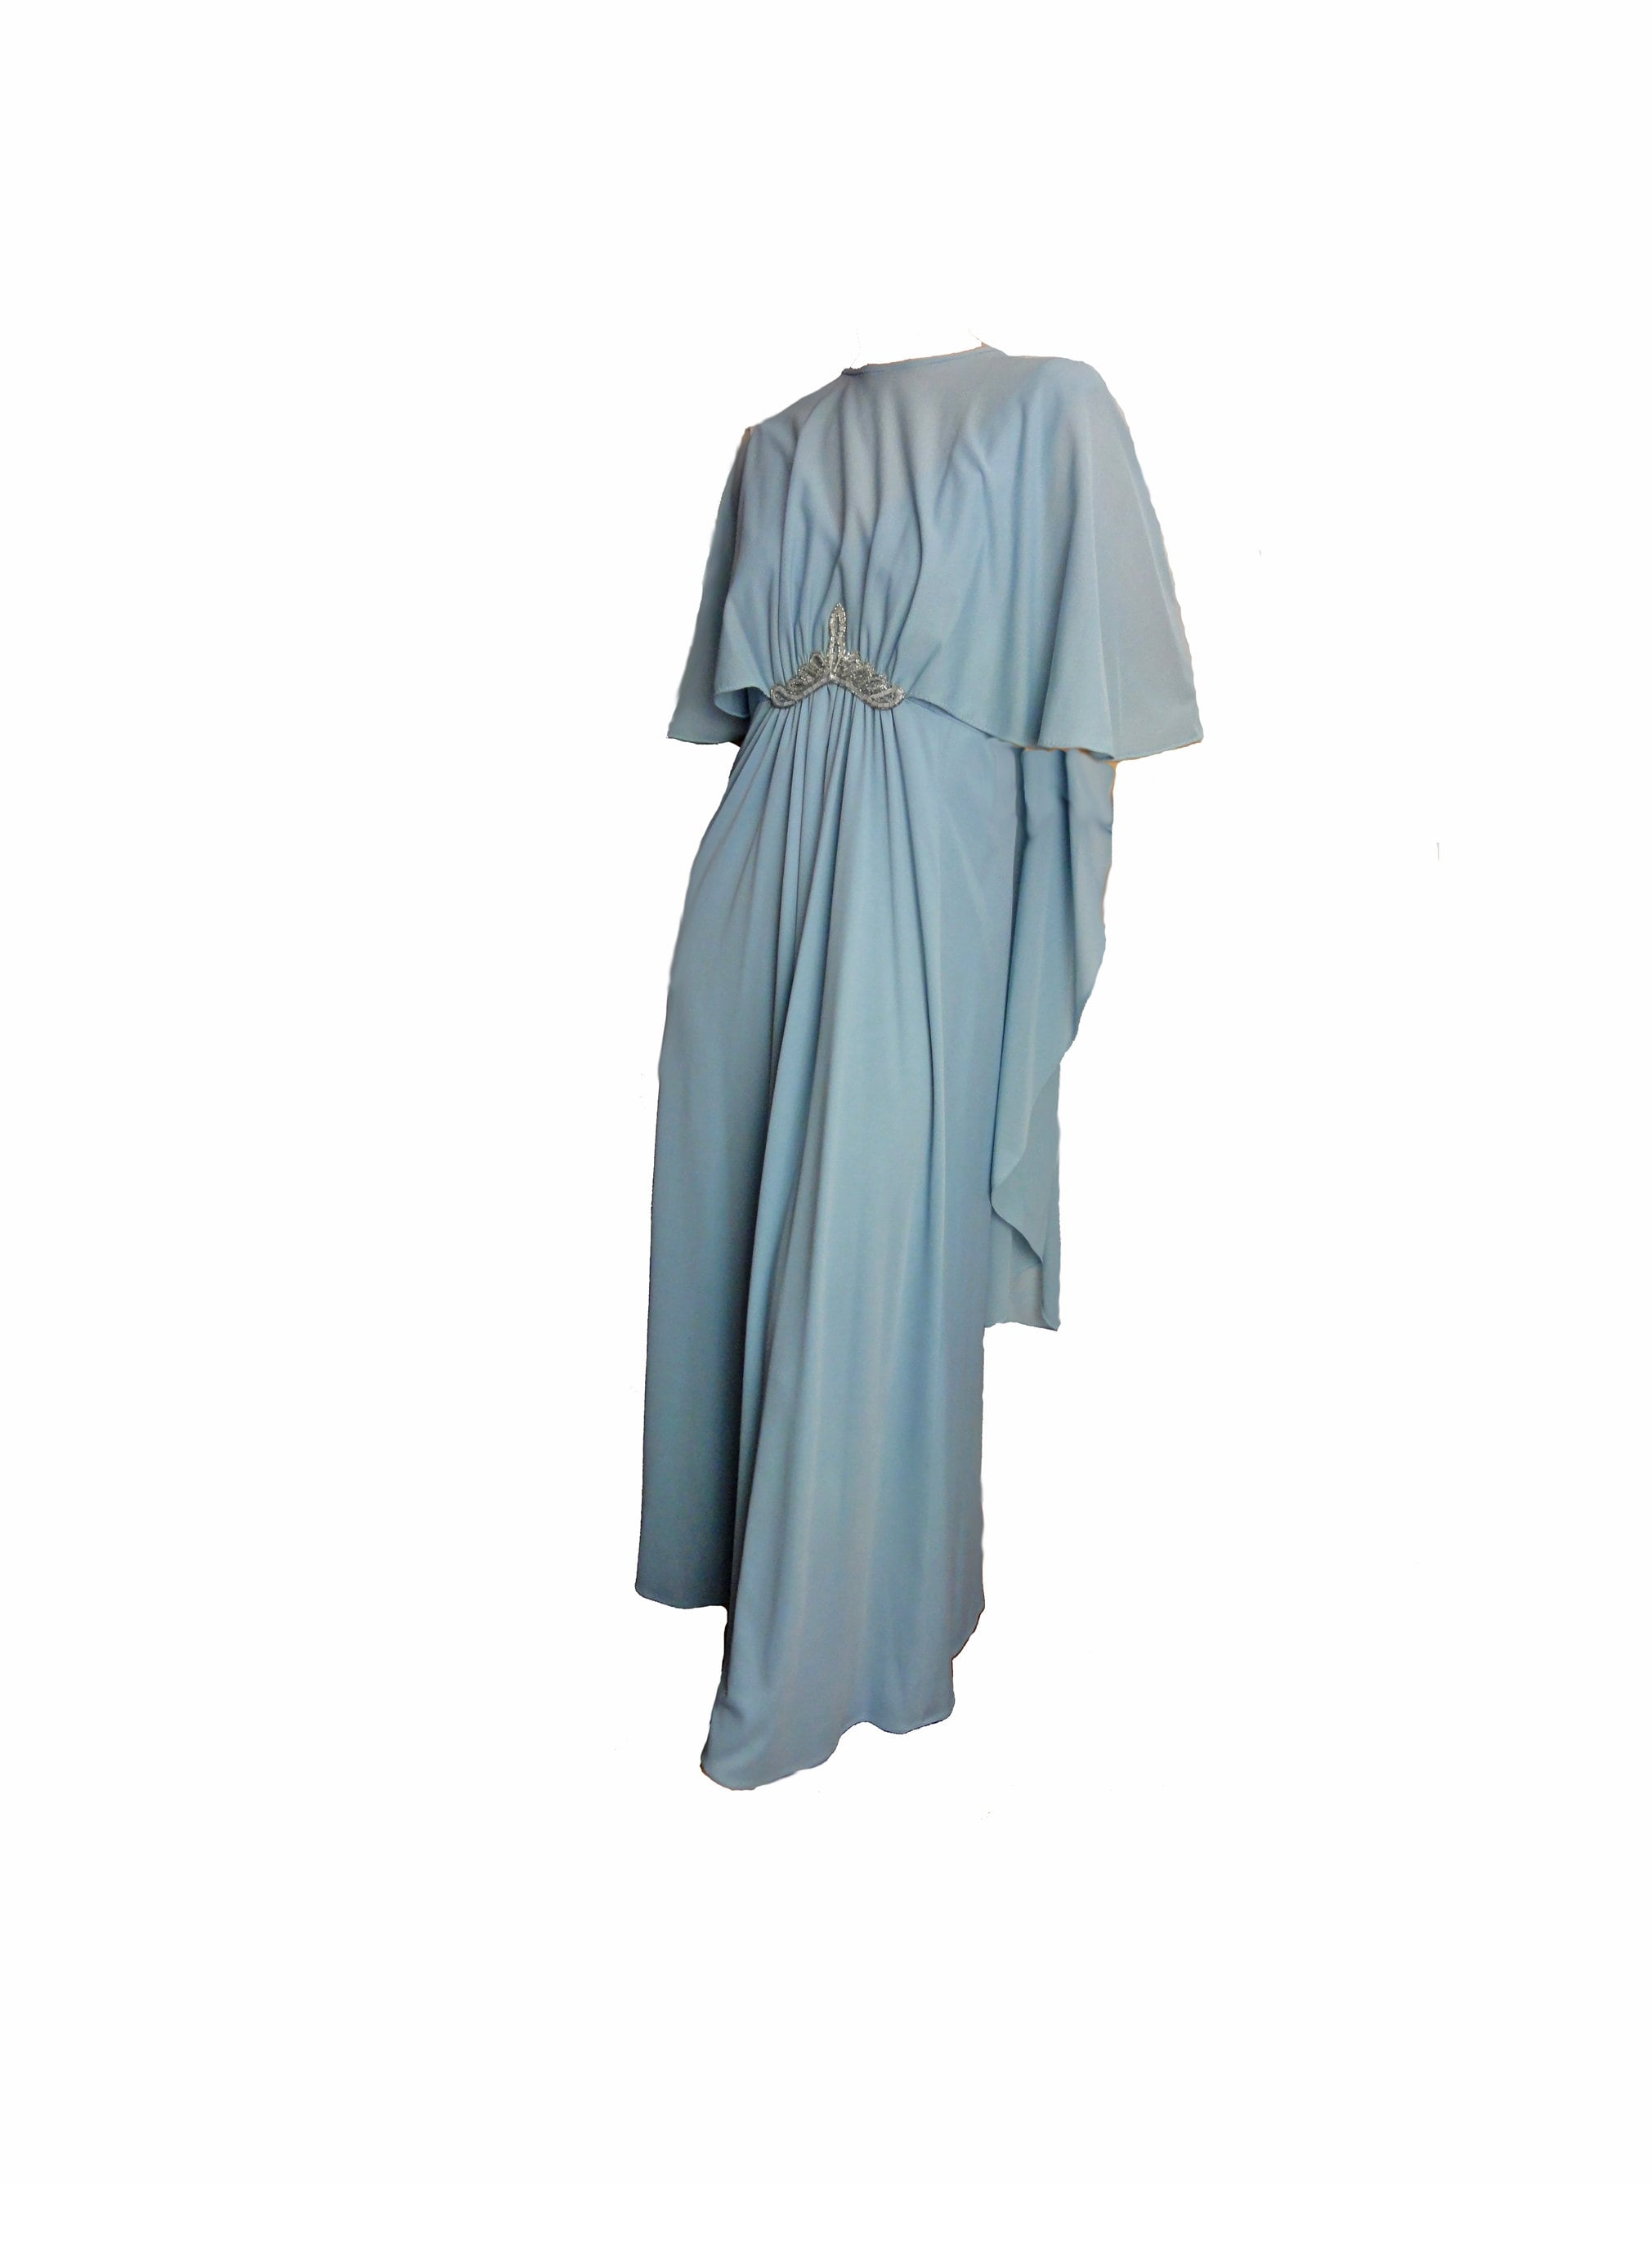 Vintage 70s Formal Dress Prom Baby Blue Evening Gown With Cape